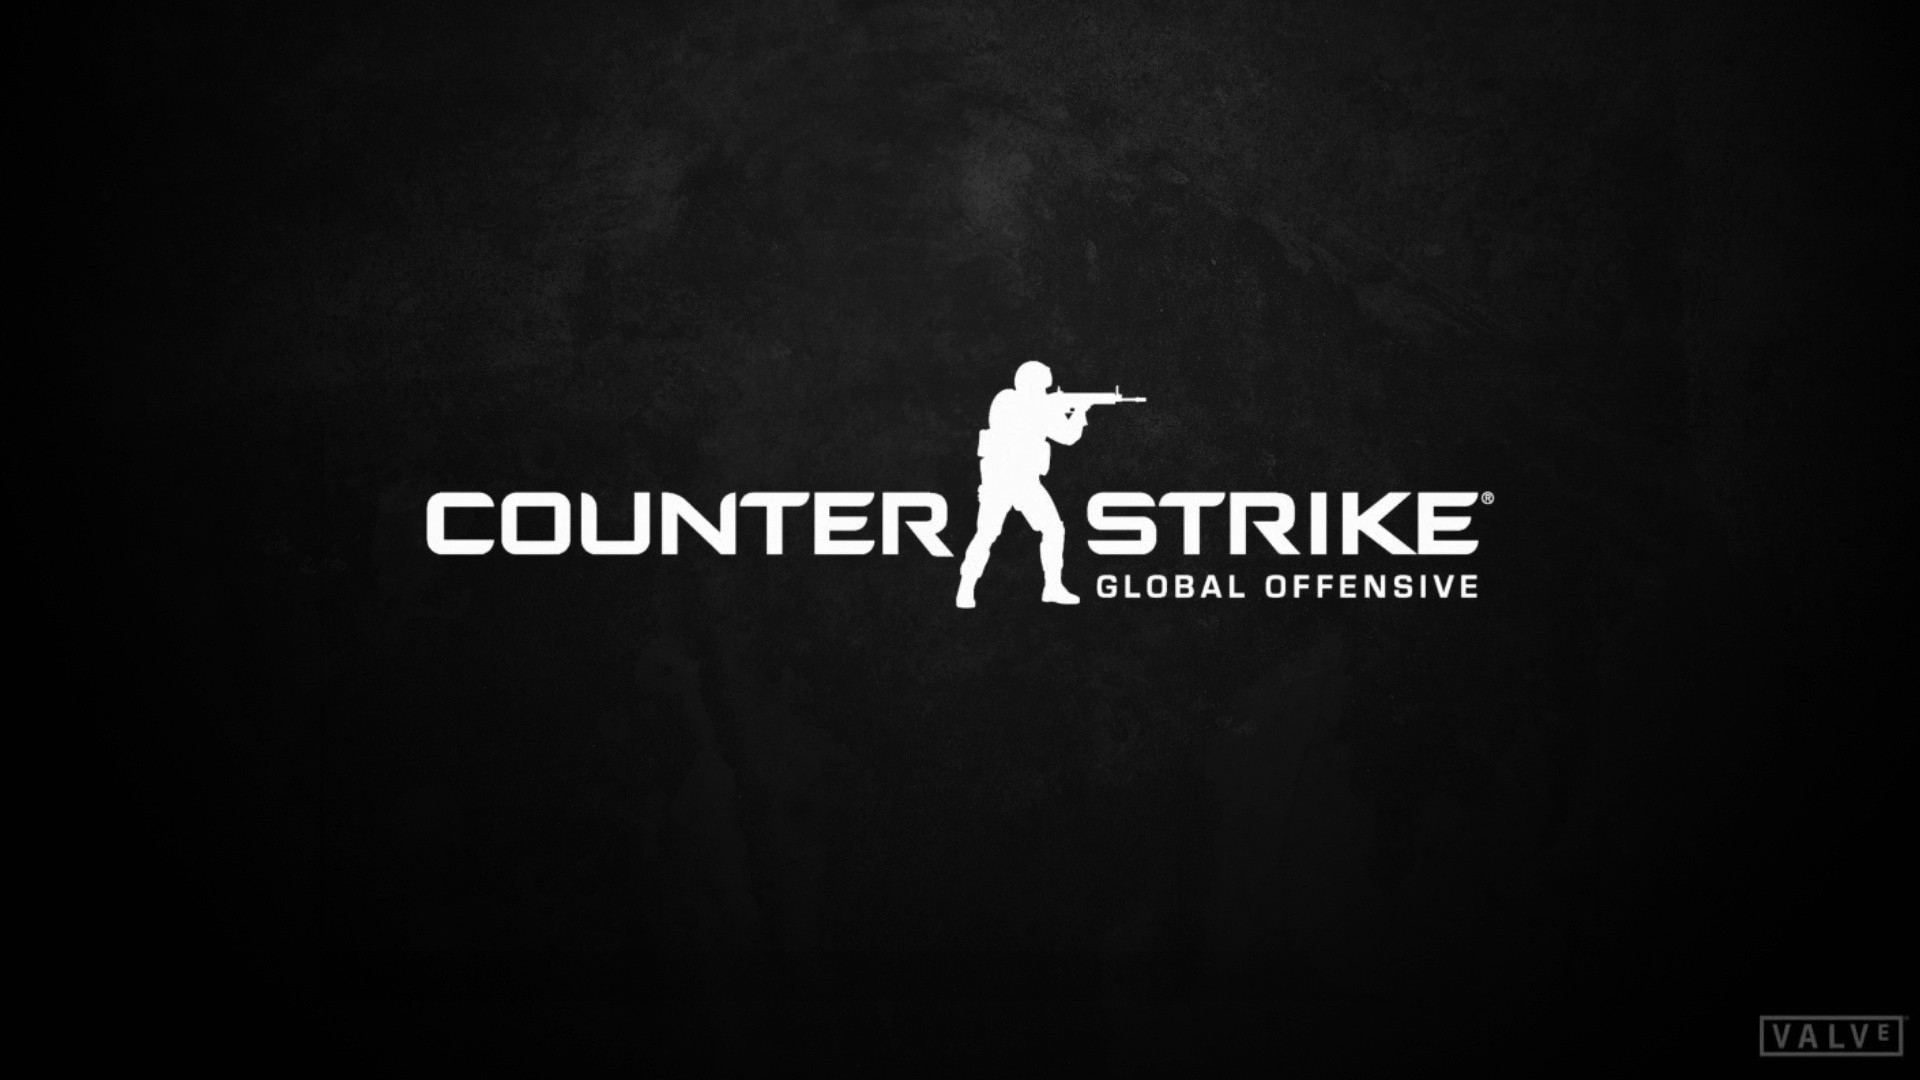 Metal Gear Solid Iphone Wallpaper Counter Strike Global Offensive Wallpapers Pictures Images